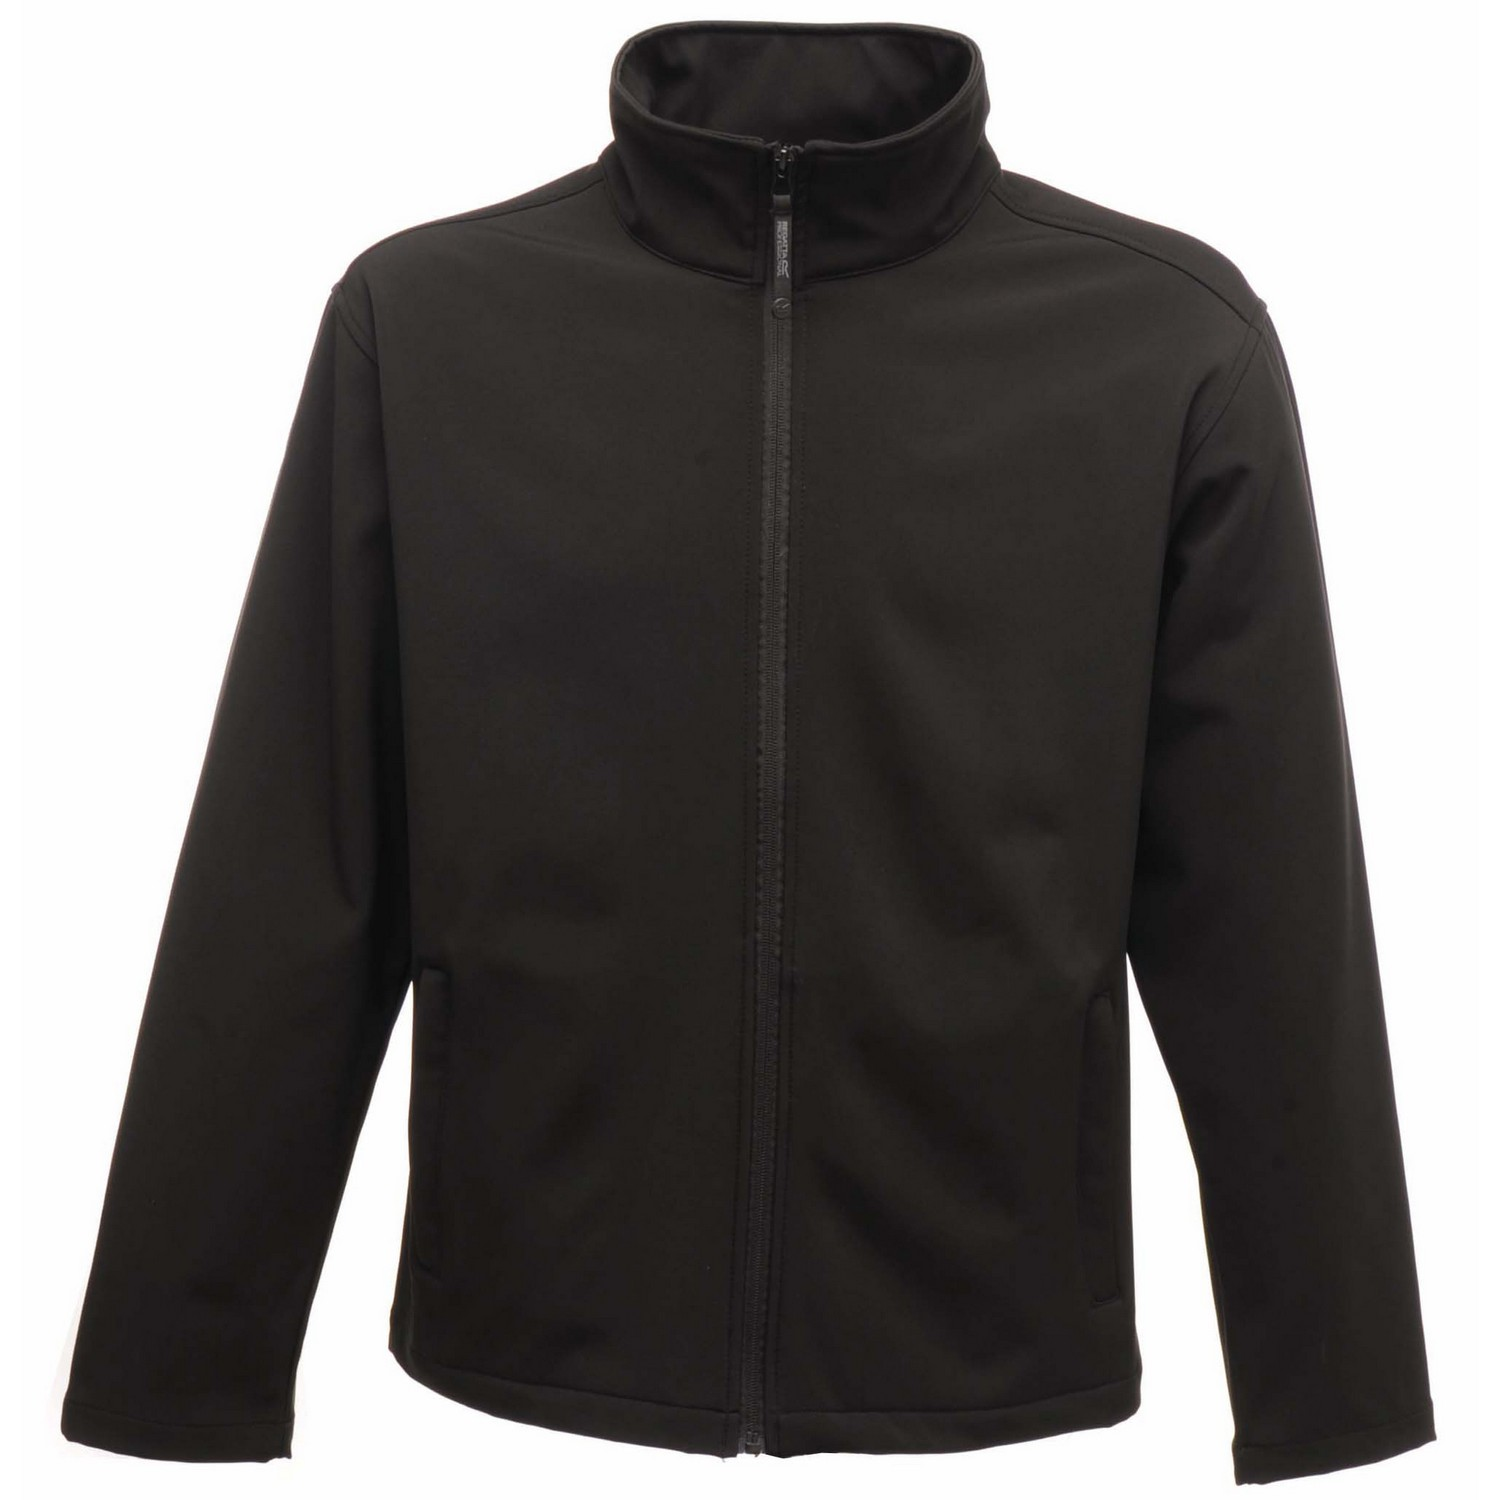 Regatta Mens Classic Softshell Jacket